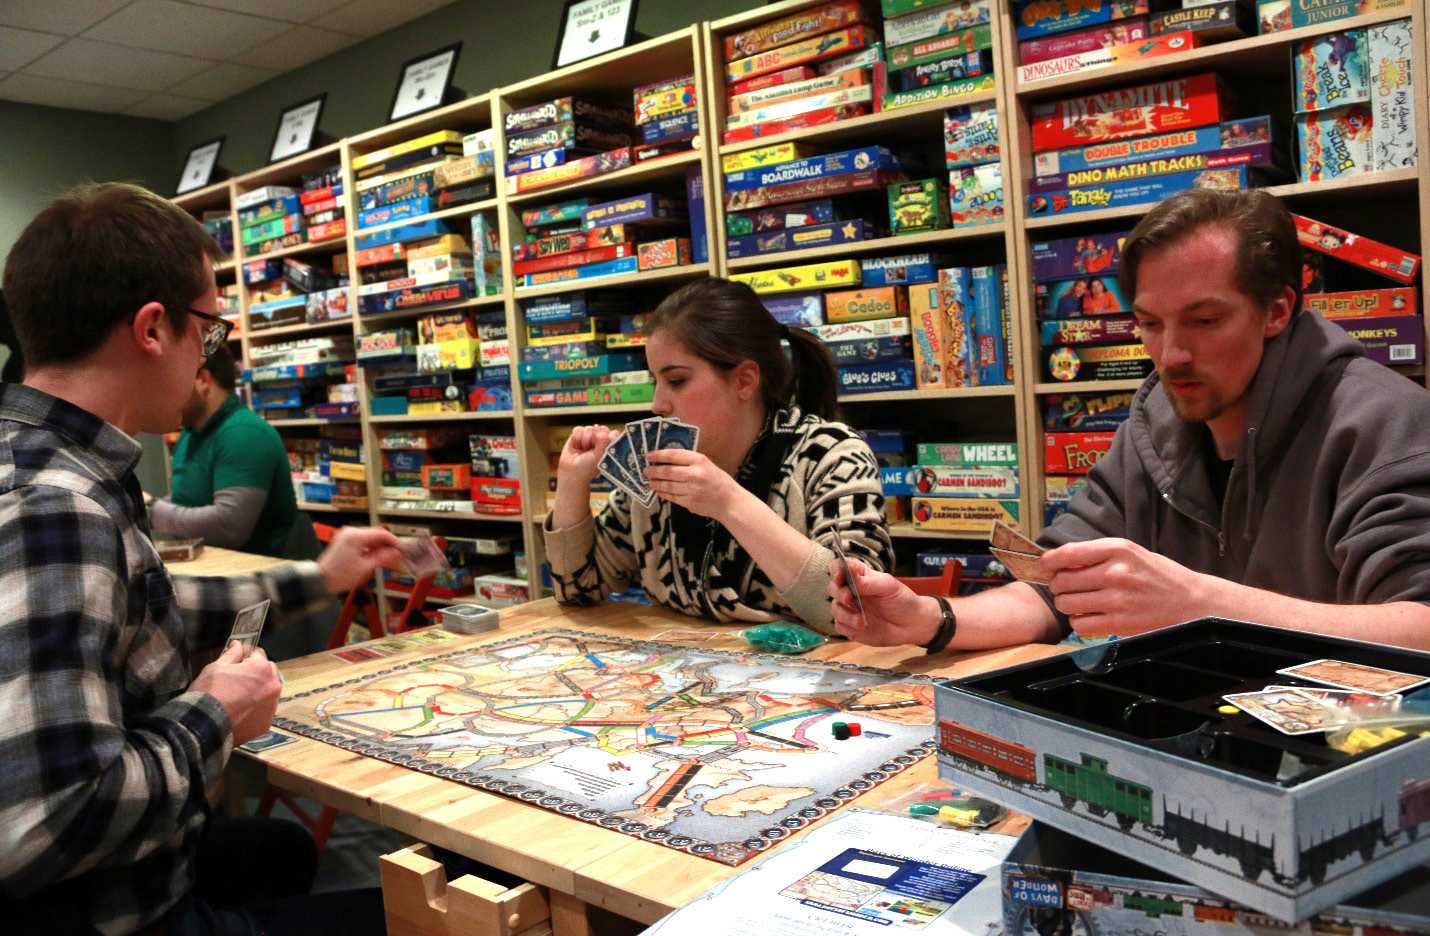 PHOTO BY ANDREW RELLINGER|STAFF PHOTOGRAPHER 3&UP Board Game Lounge in Downtown Plymouth is a safe haven for some good-old-fashioned board game fun. (from left to right) Joe Gudobba of Dearborn, Becky Rea of Northville and Jon Stoddart of Garden City enjoy a collection of over 1,000 games from the 1950s through today at the new lounge.